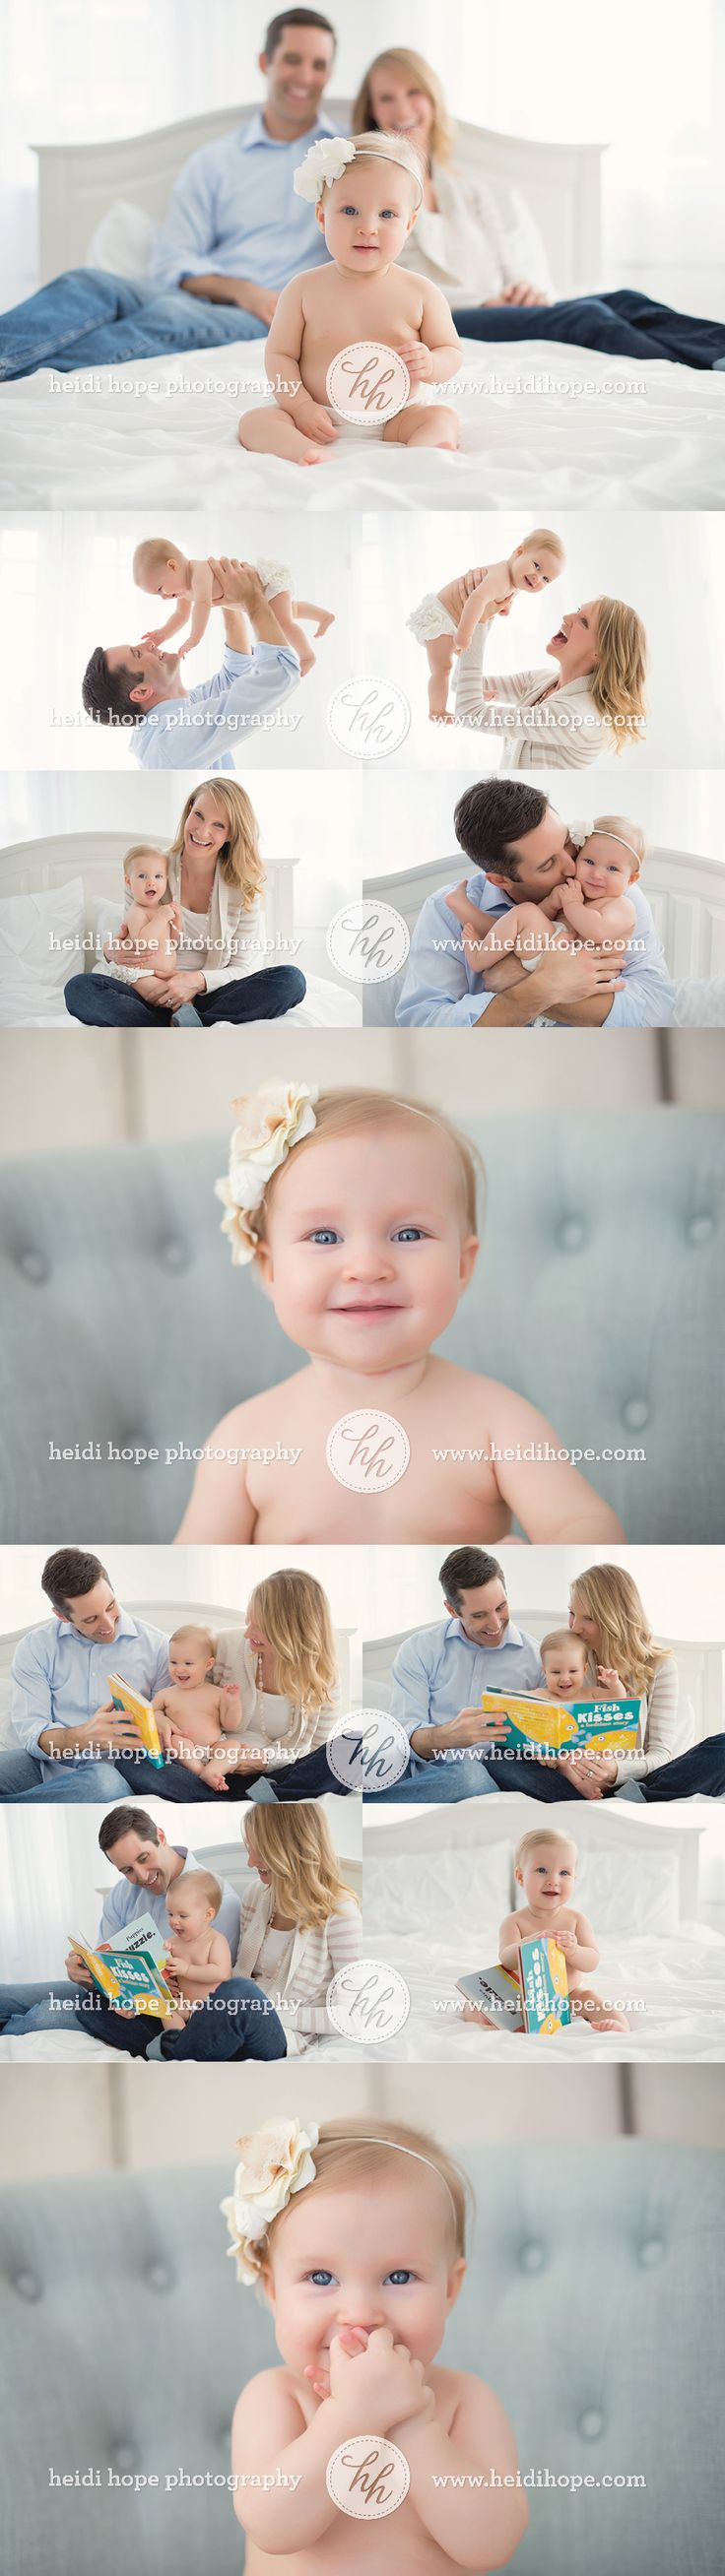 6 month old baby girl session by heidi hope photography